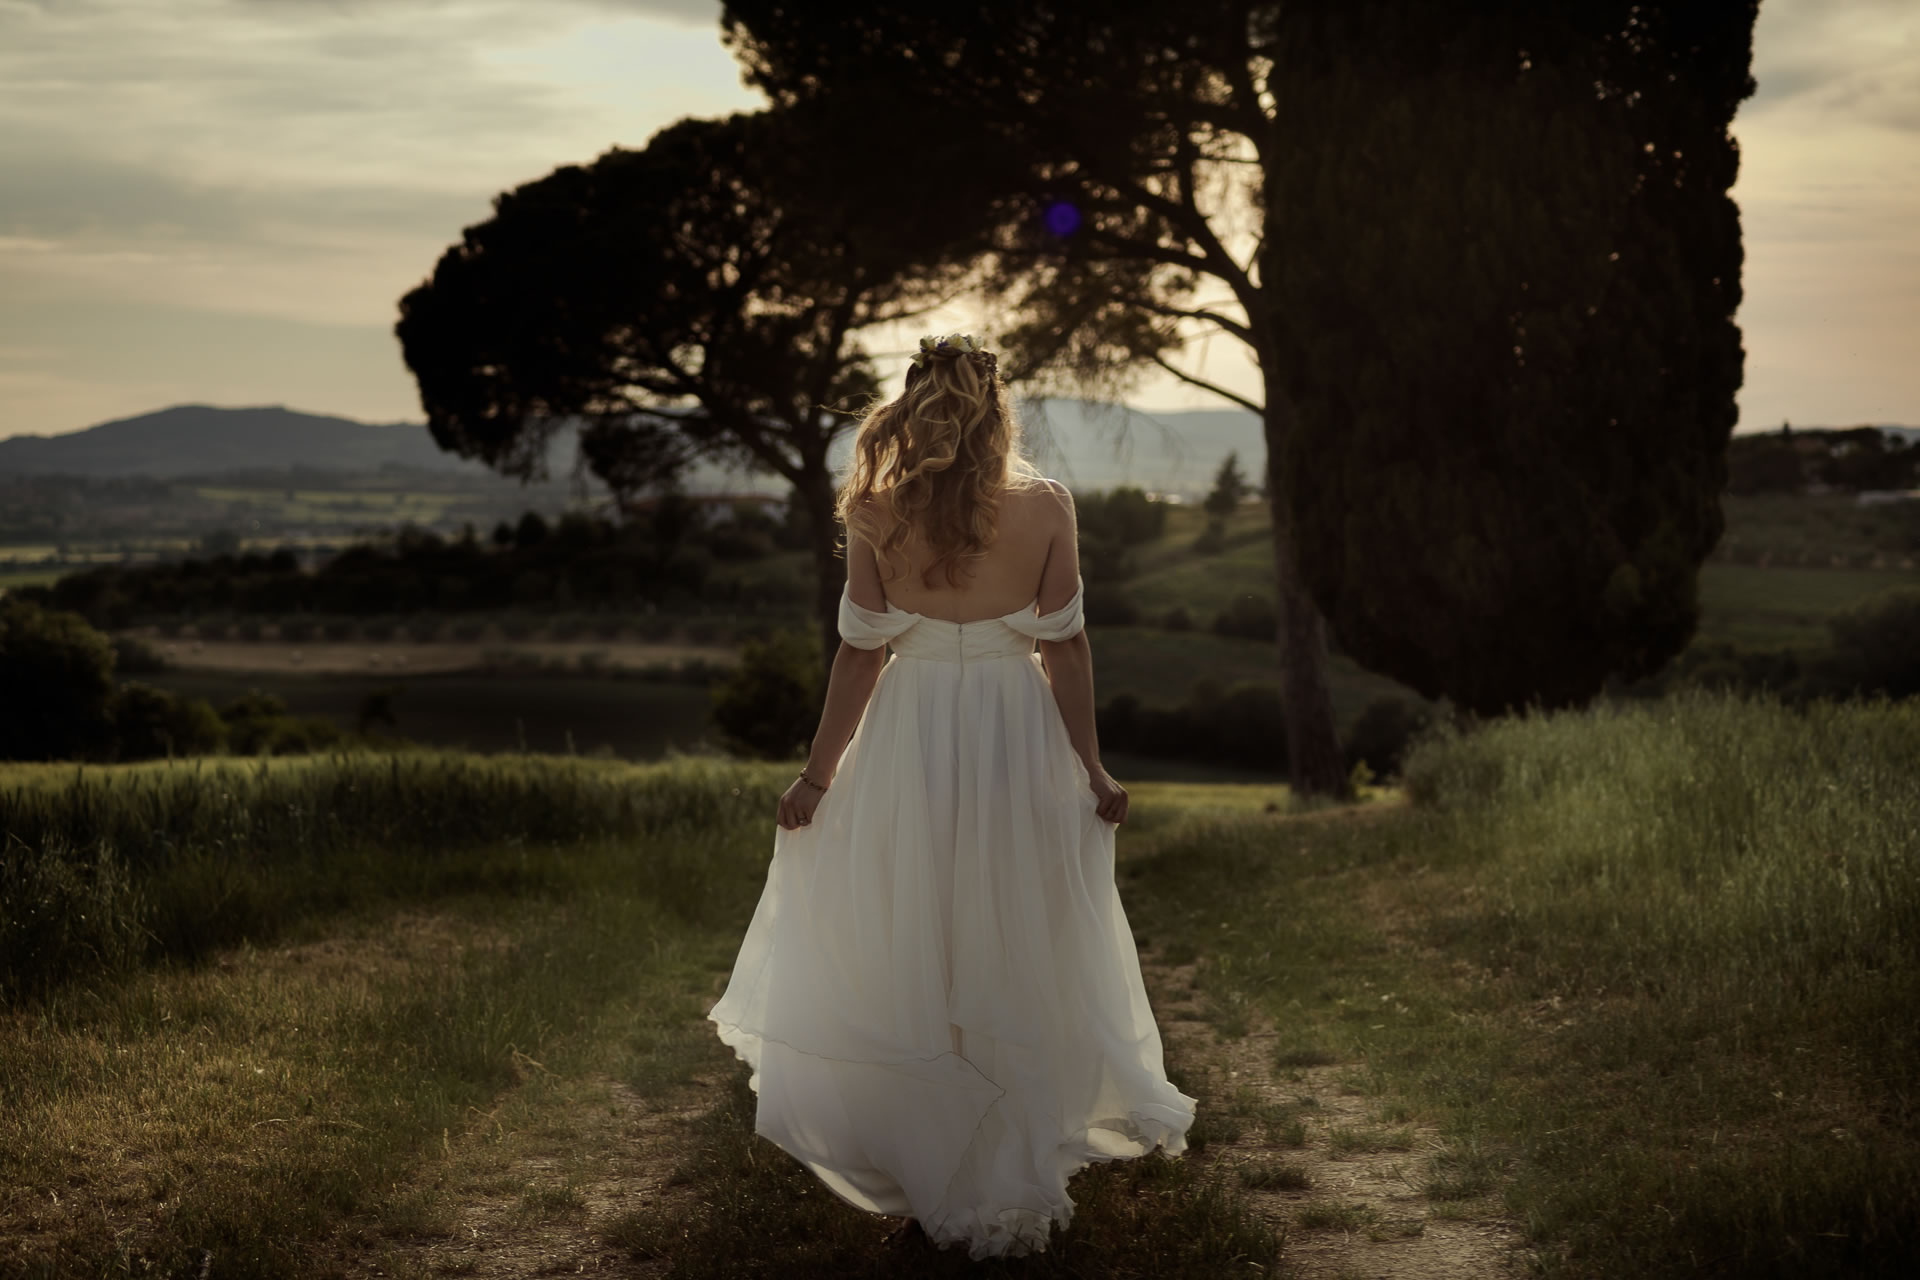 Elegance - 31 :: Wedding in Perugia countryside. Jean and Toby :: Luxury wedding photography - 30 :: Elegance - 31